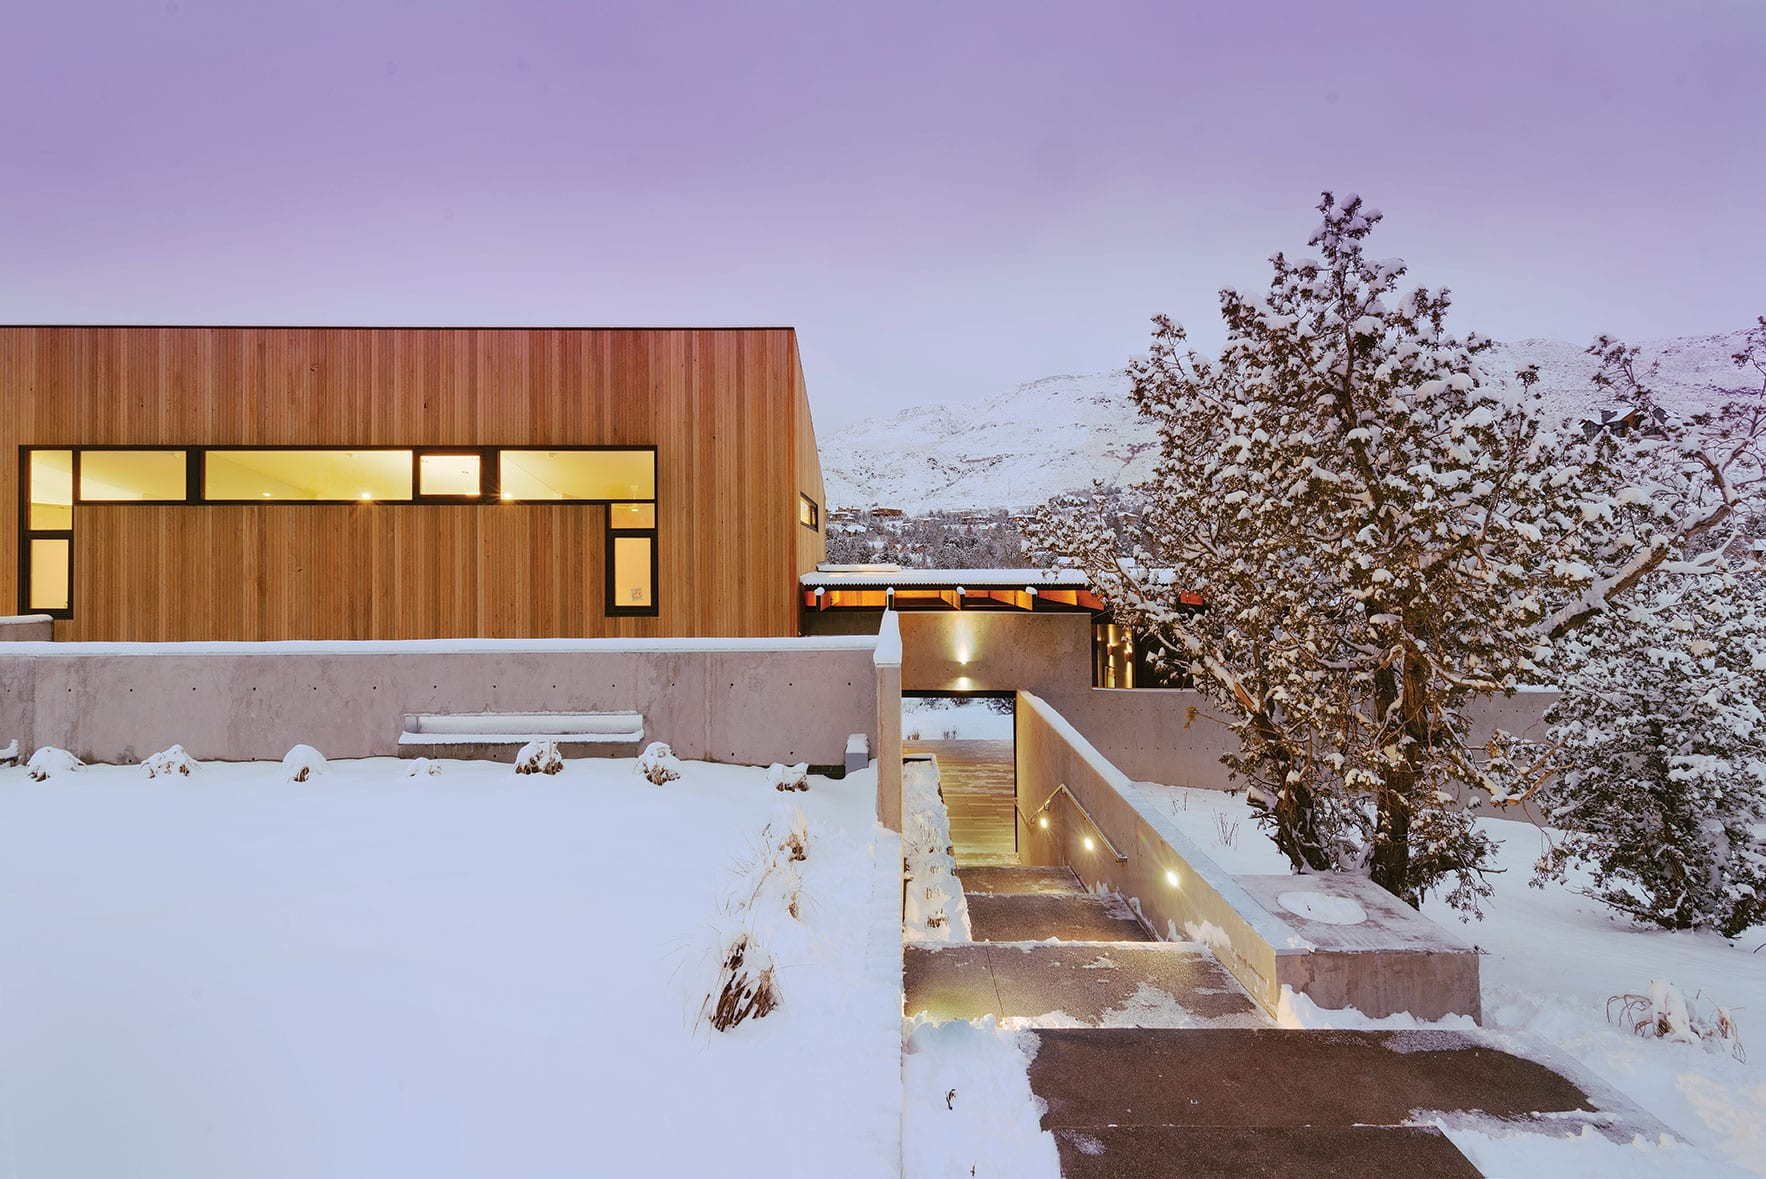 Designed by architect jack hawkins this modern home fits seamlessly into a west reno neighborhood dominated by houses from the 1970s and 80s